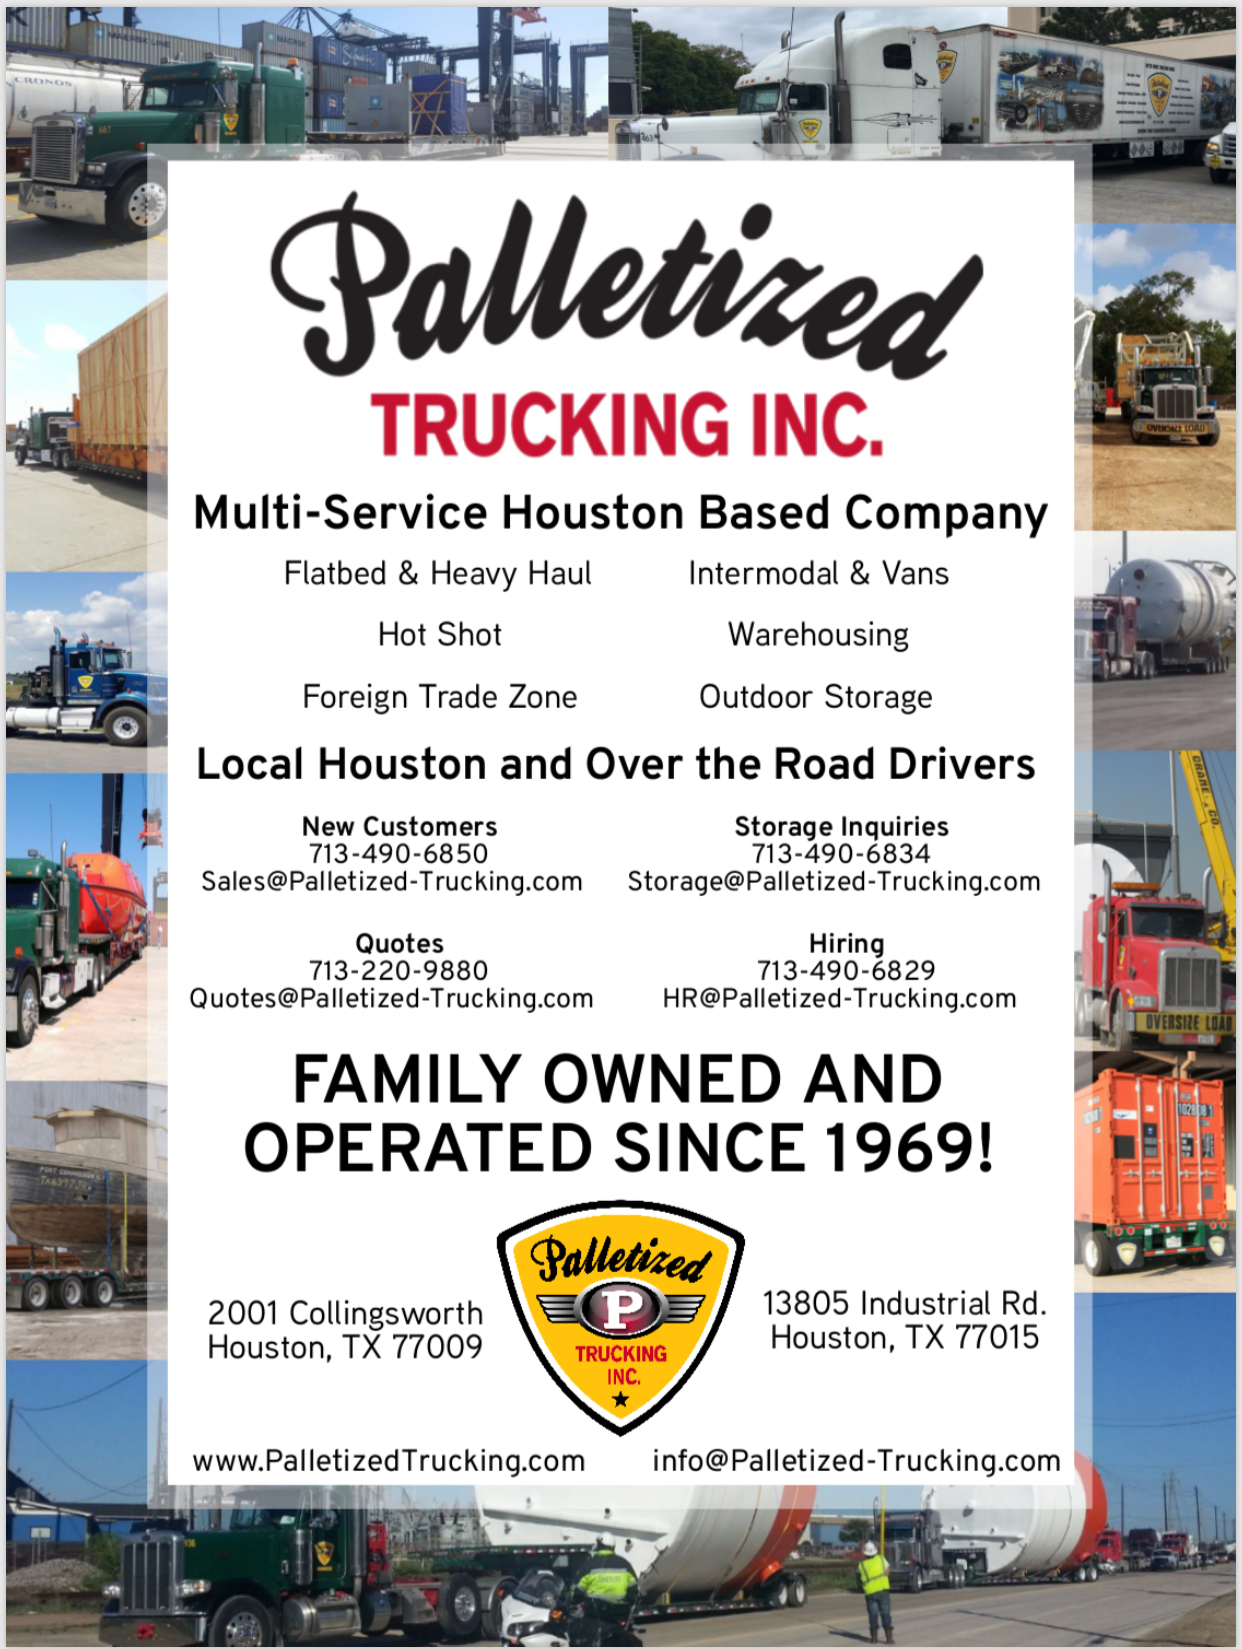 We are the most diverse trucking company in Houston